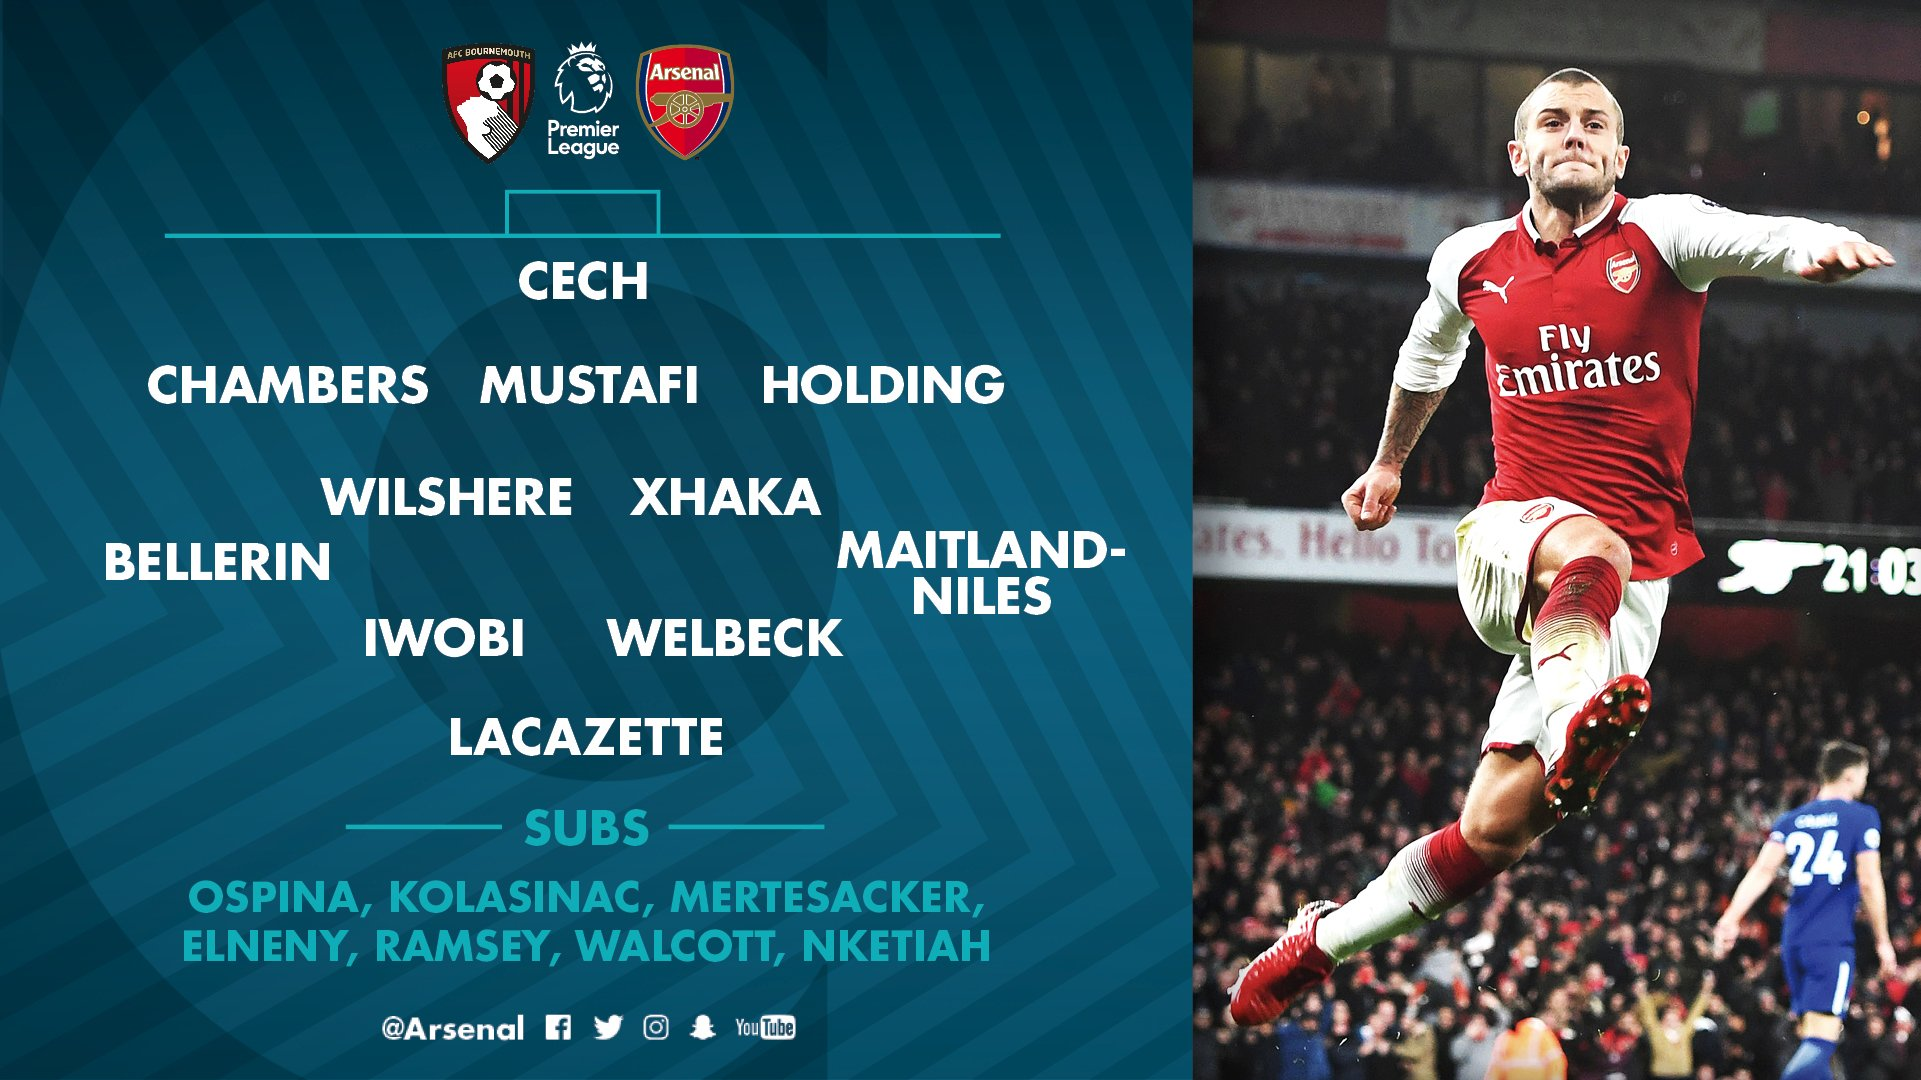 Here's how we line up for #AFCBvAFC https://t.co/gw3WTb8Pji